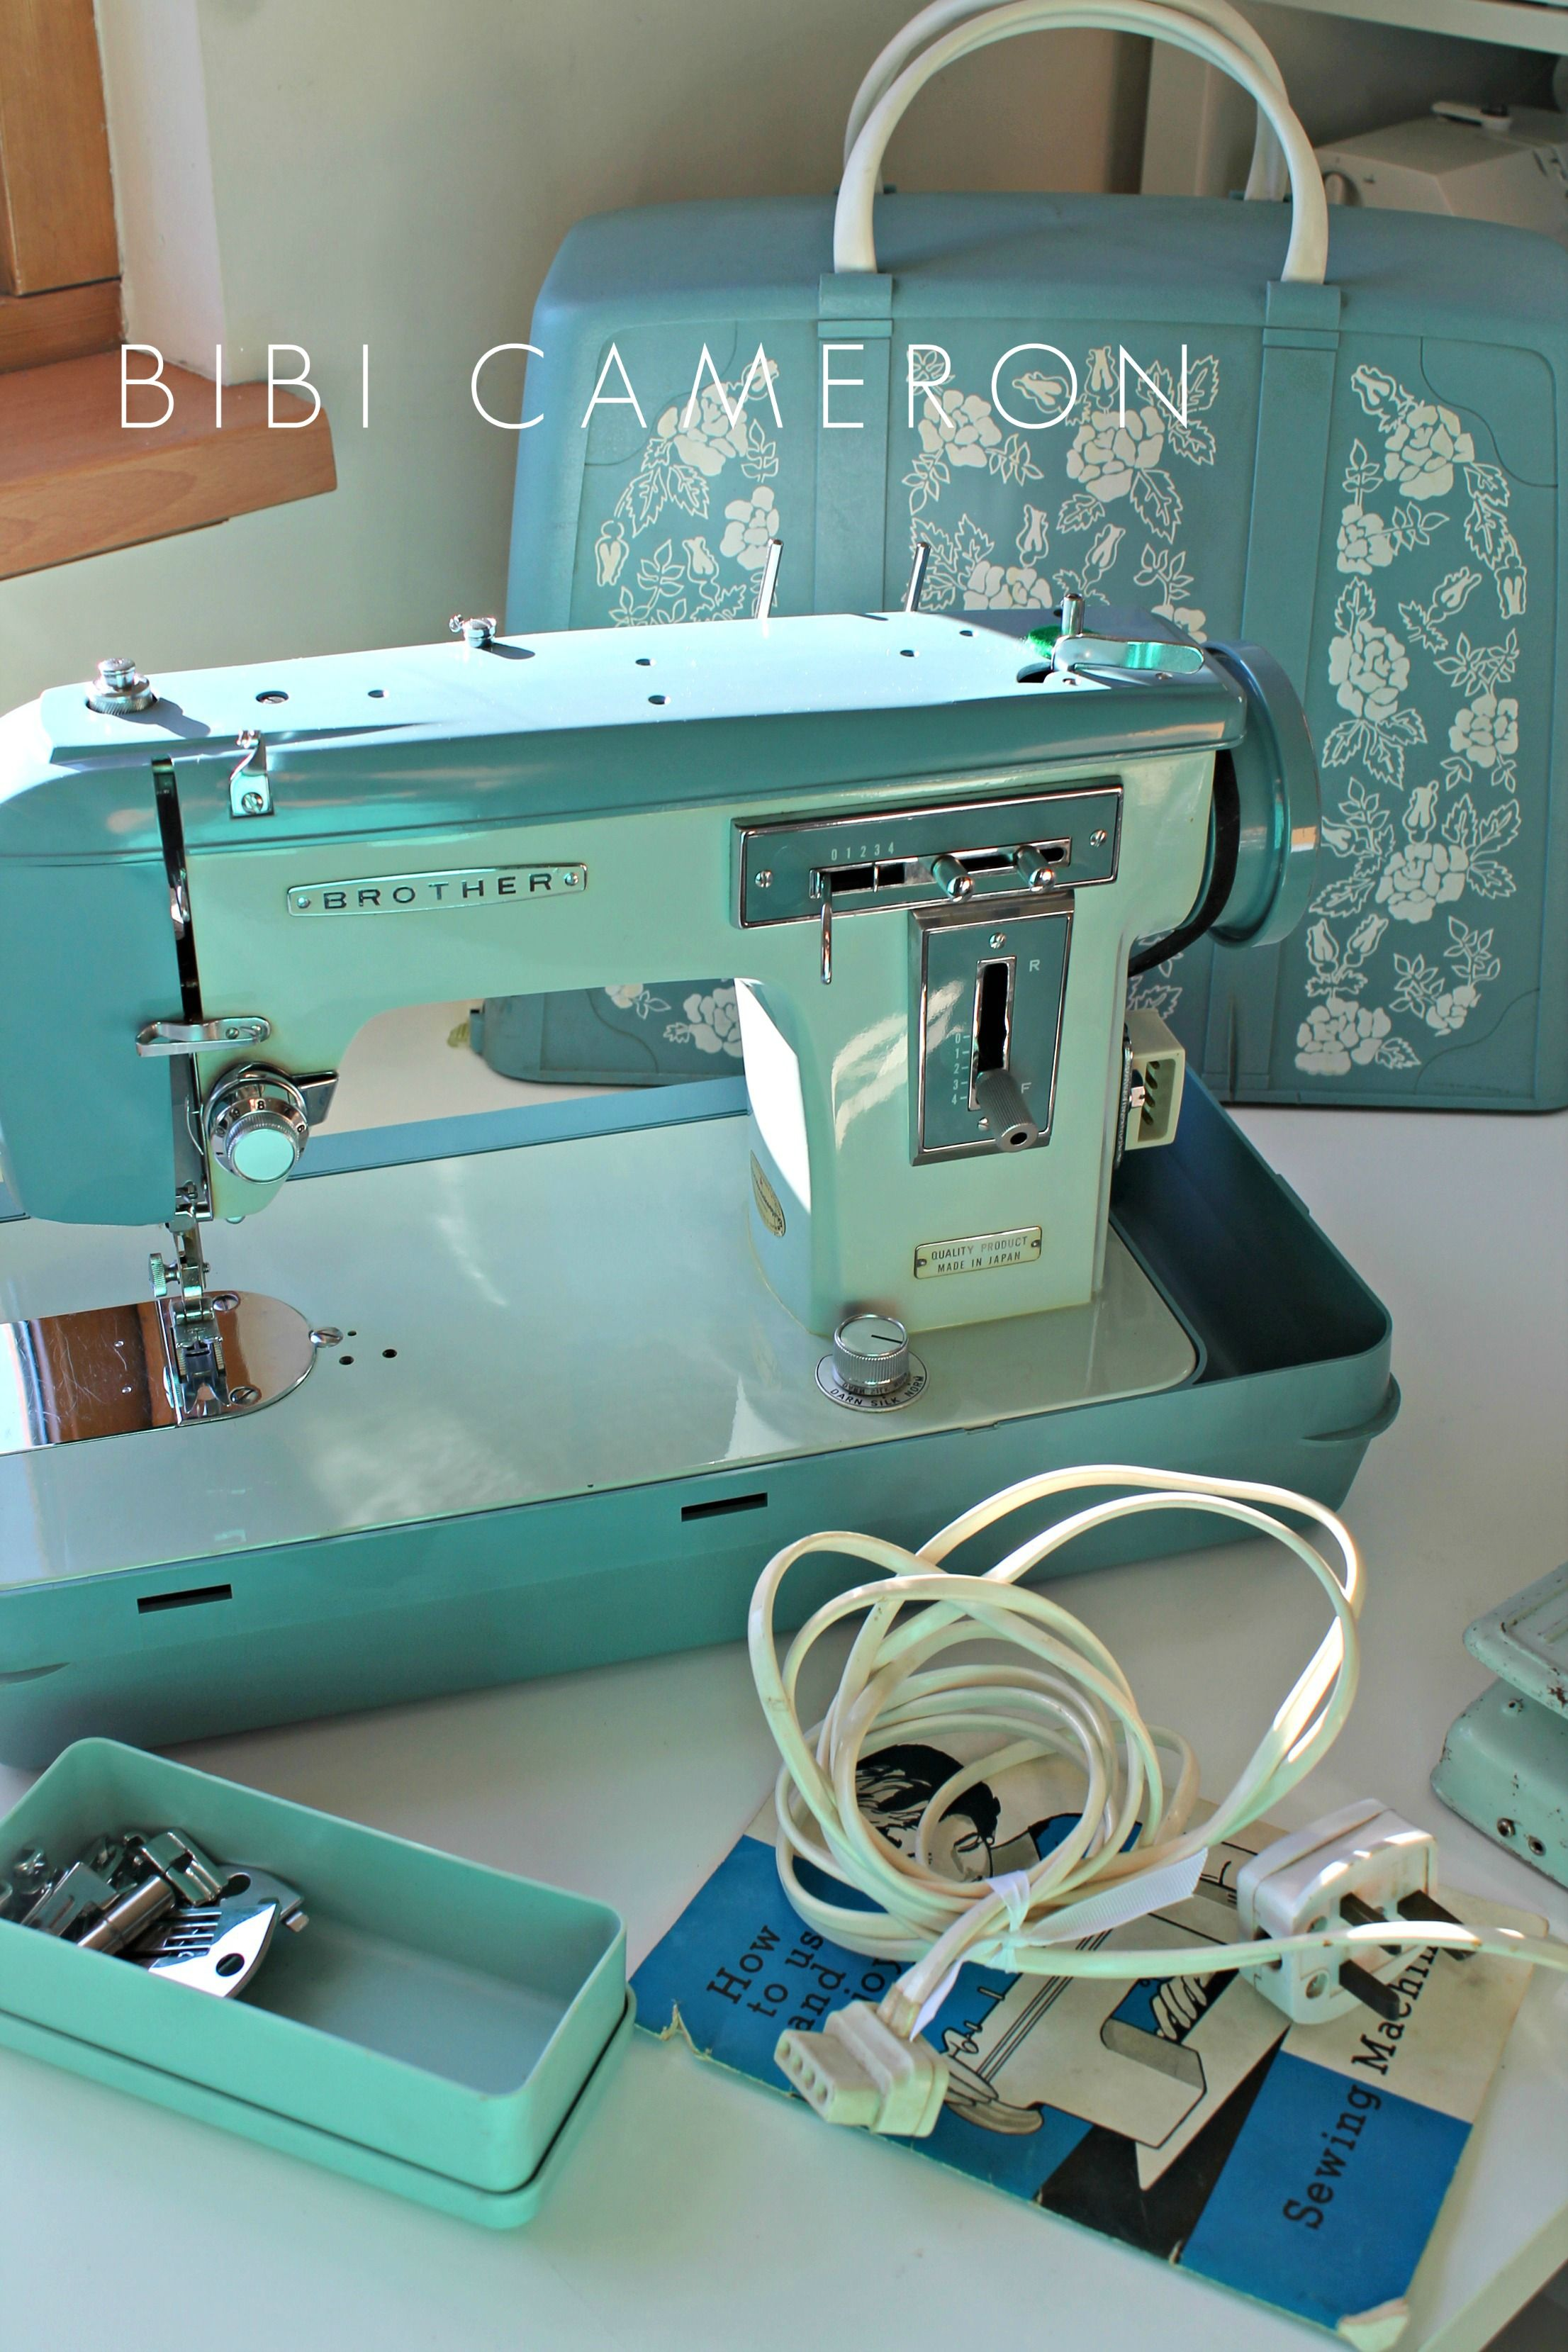 Original Brother Sewing Machine J A 28 With Hard Plastic Cover Case Sewing Machine Vintage Sewing Machines Brother Sewing Machines